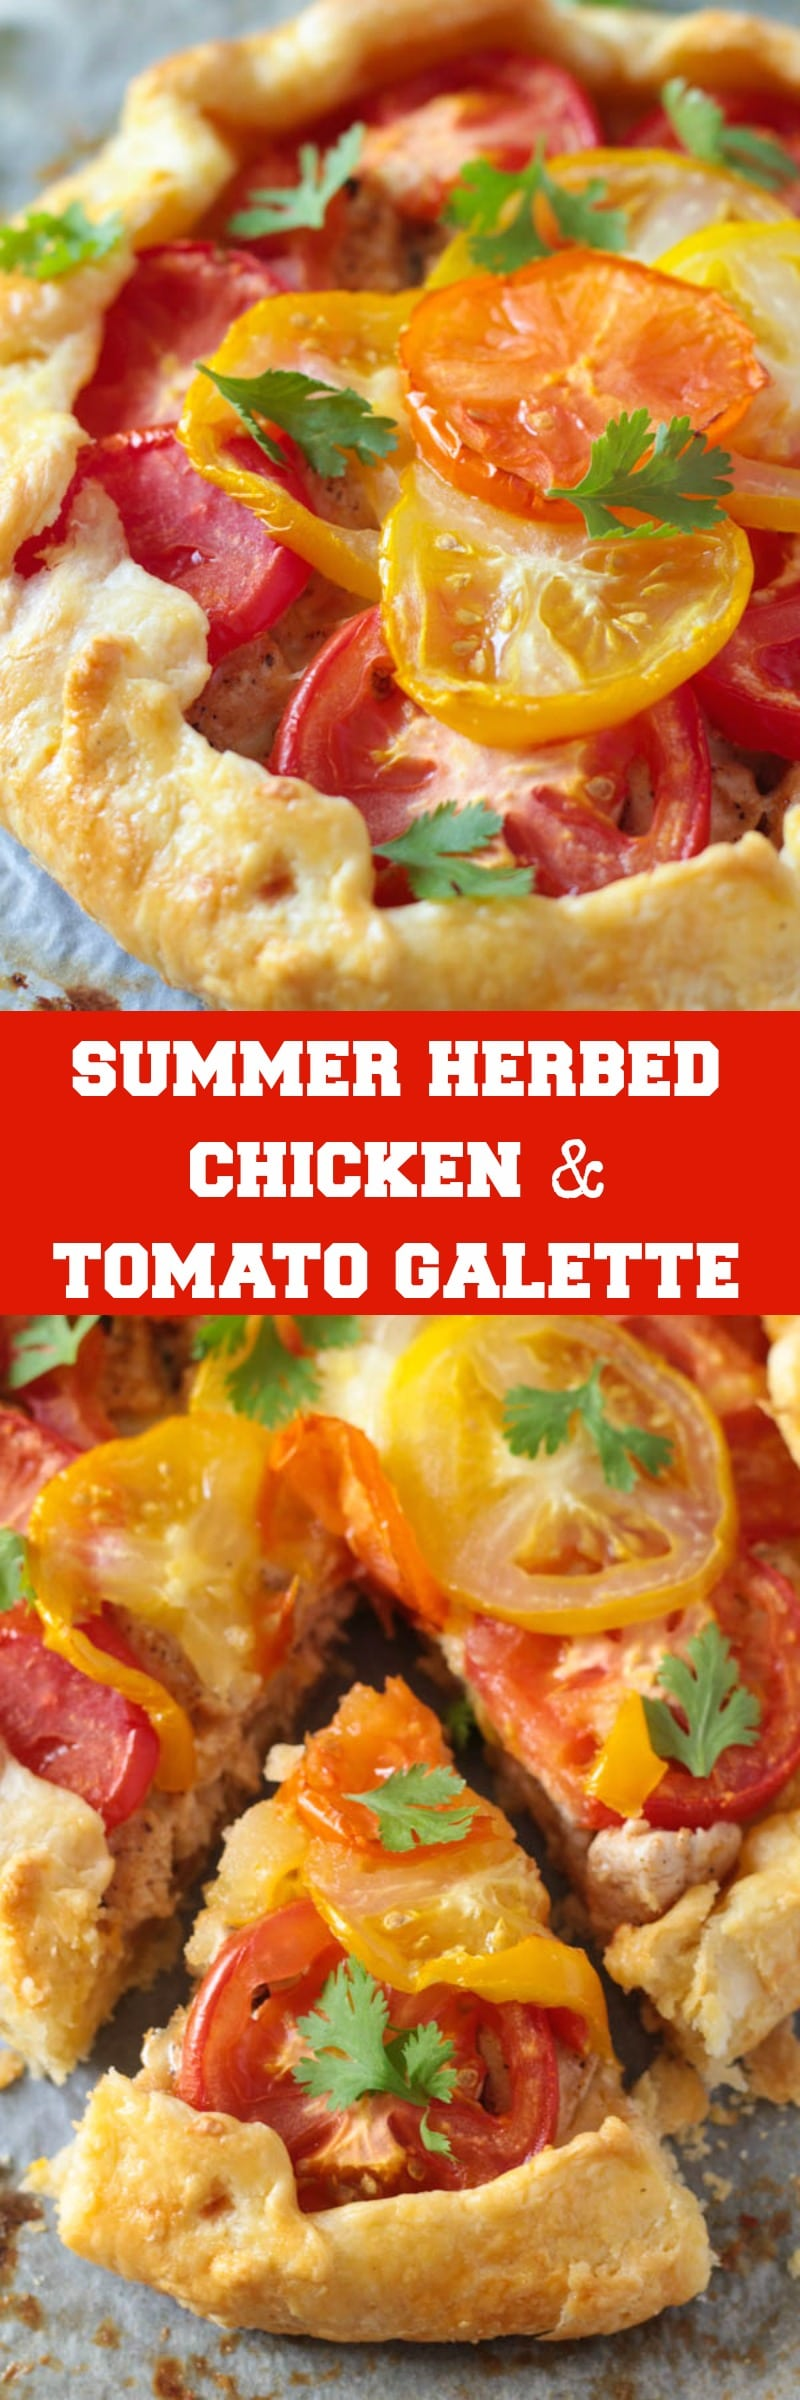 Summer Herbed Chicken & Tomato Galette